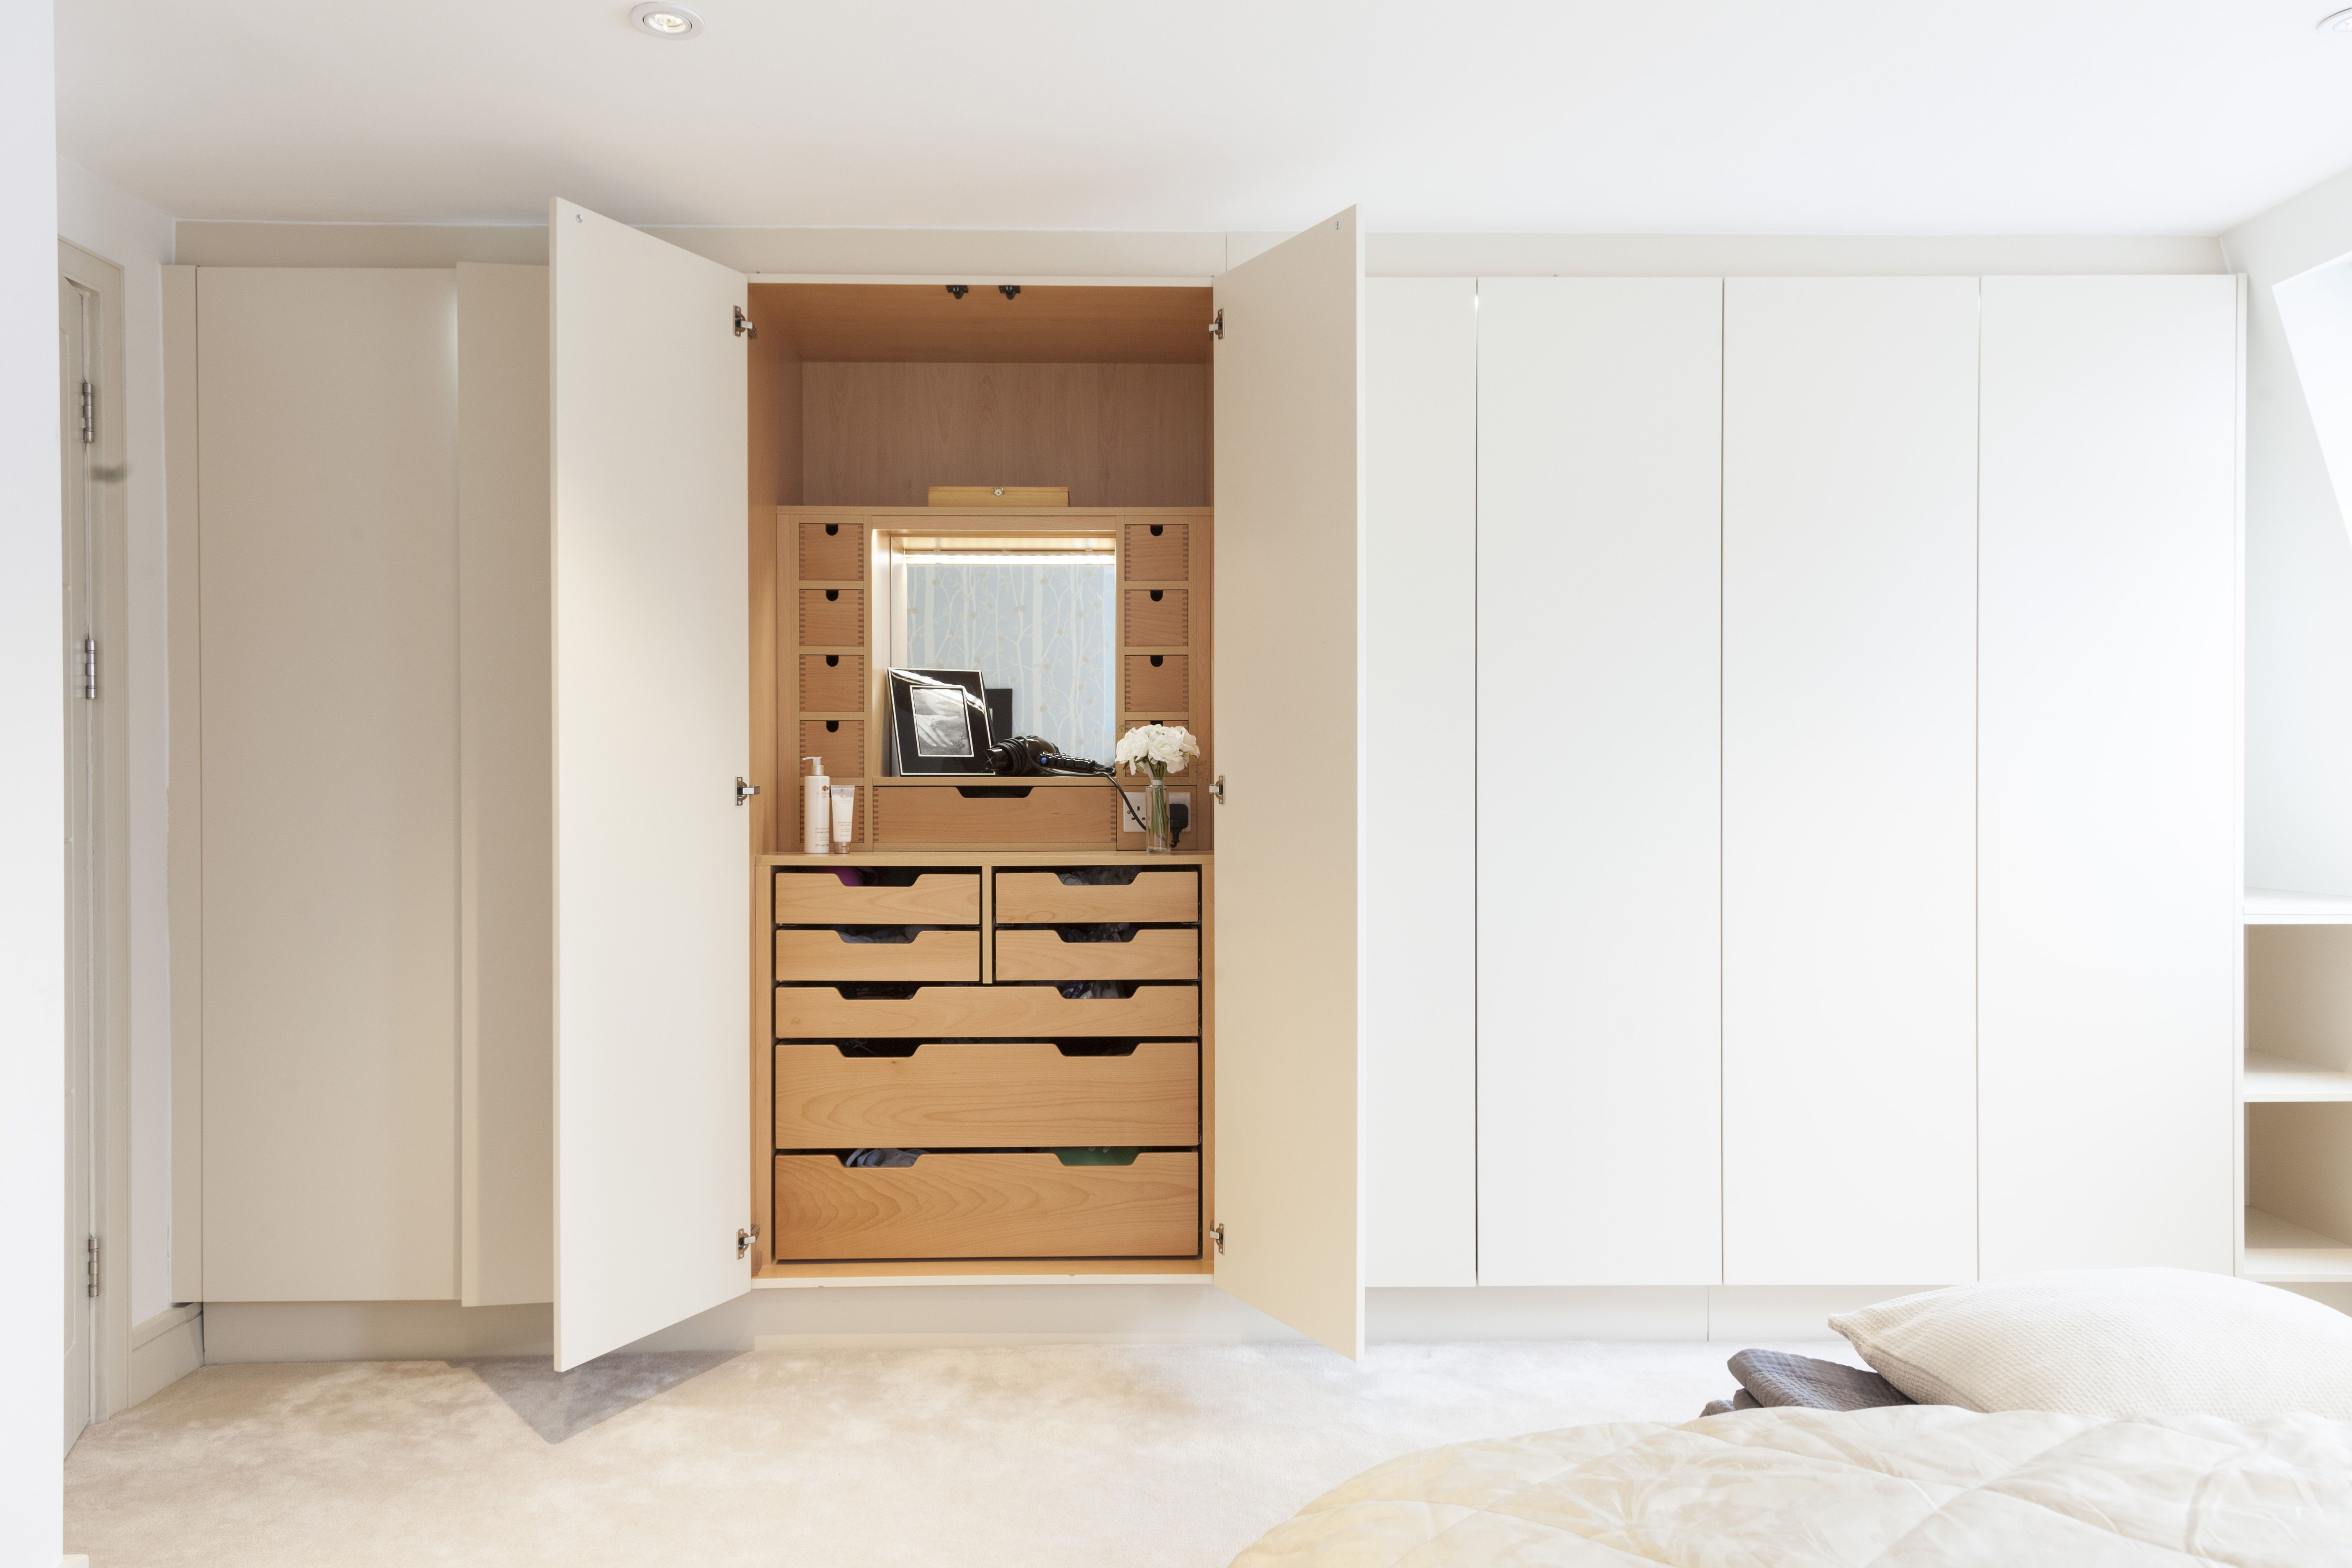 Beautiful Bedrooms And Built In Wardrobes Fulham, RJV Designs